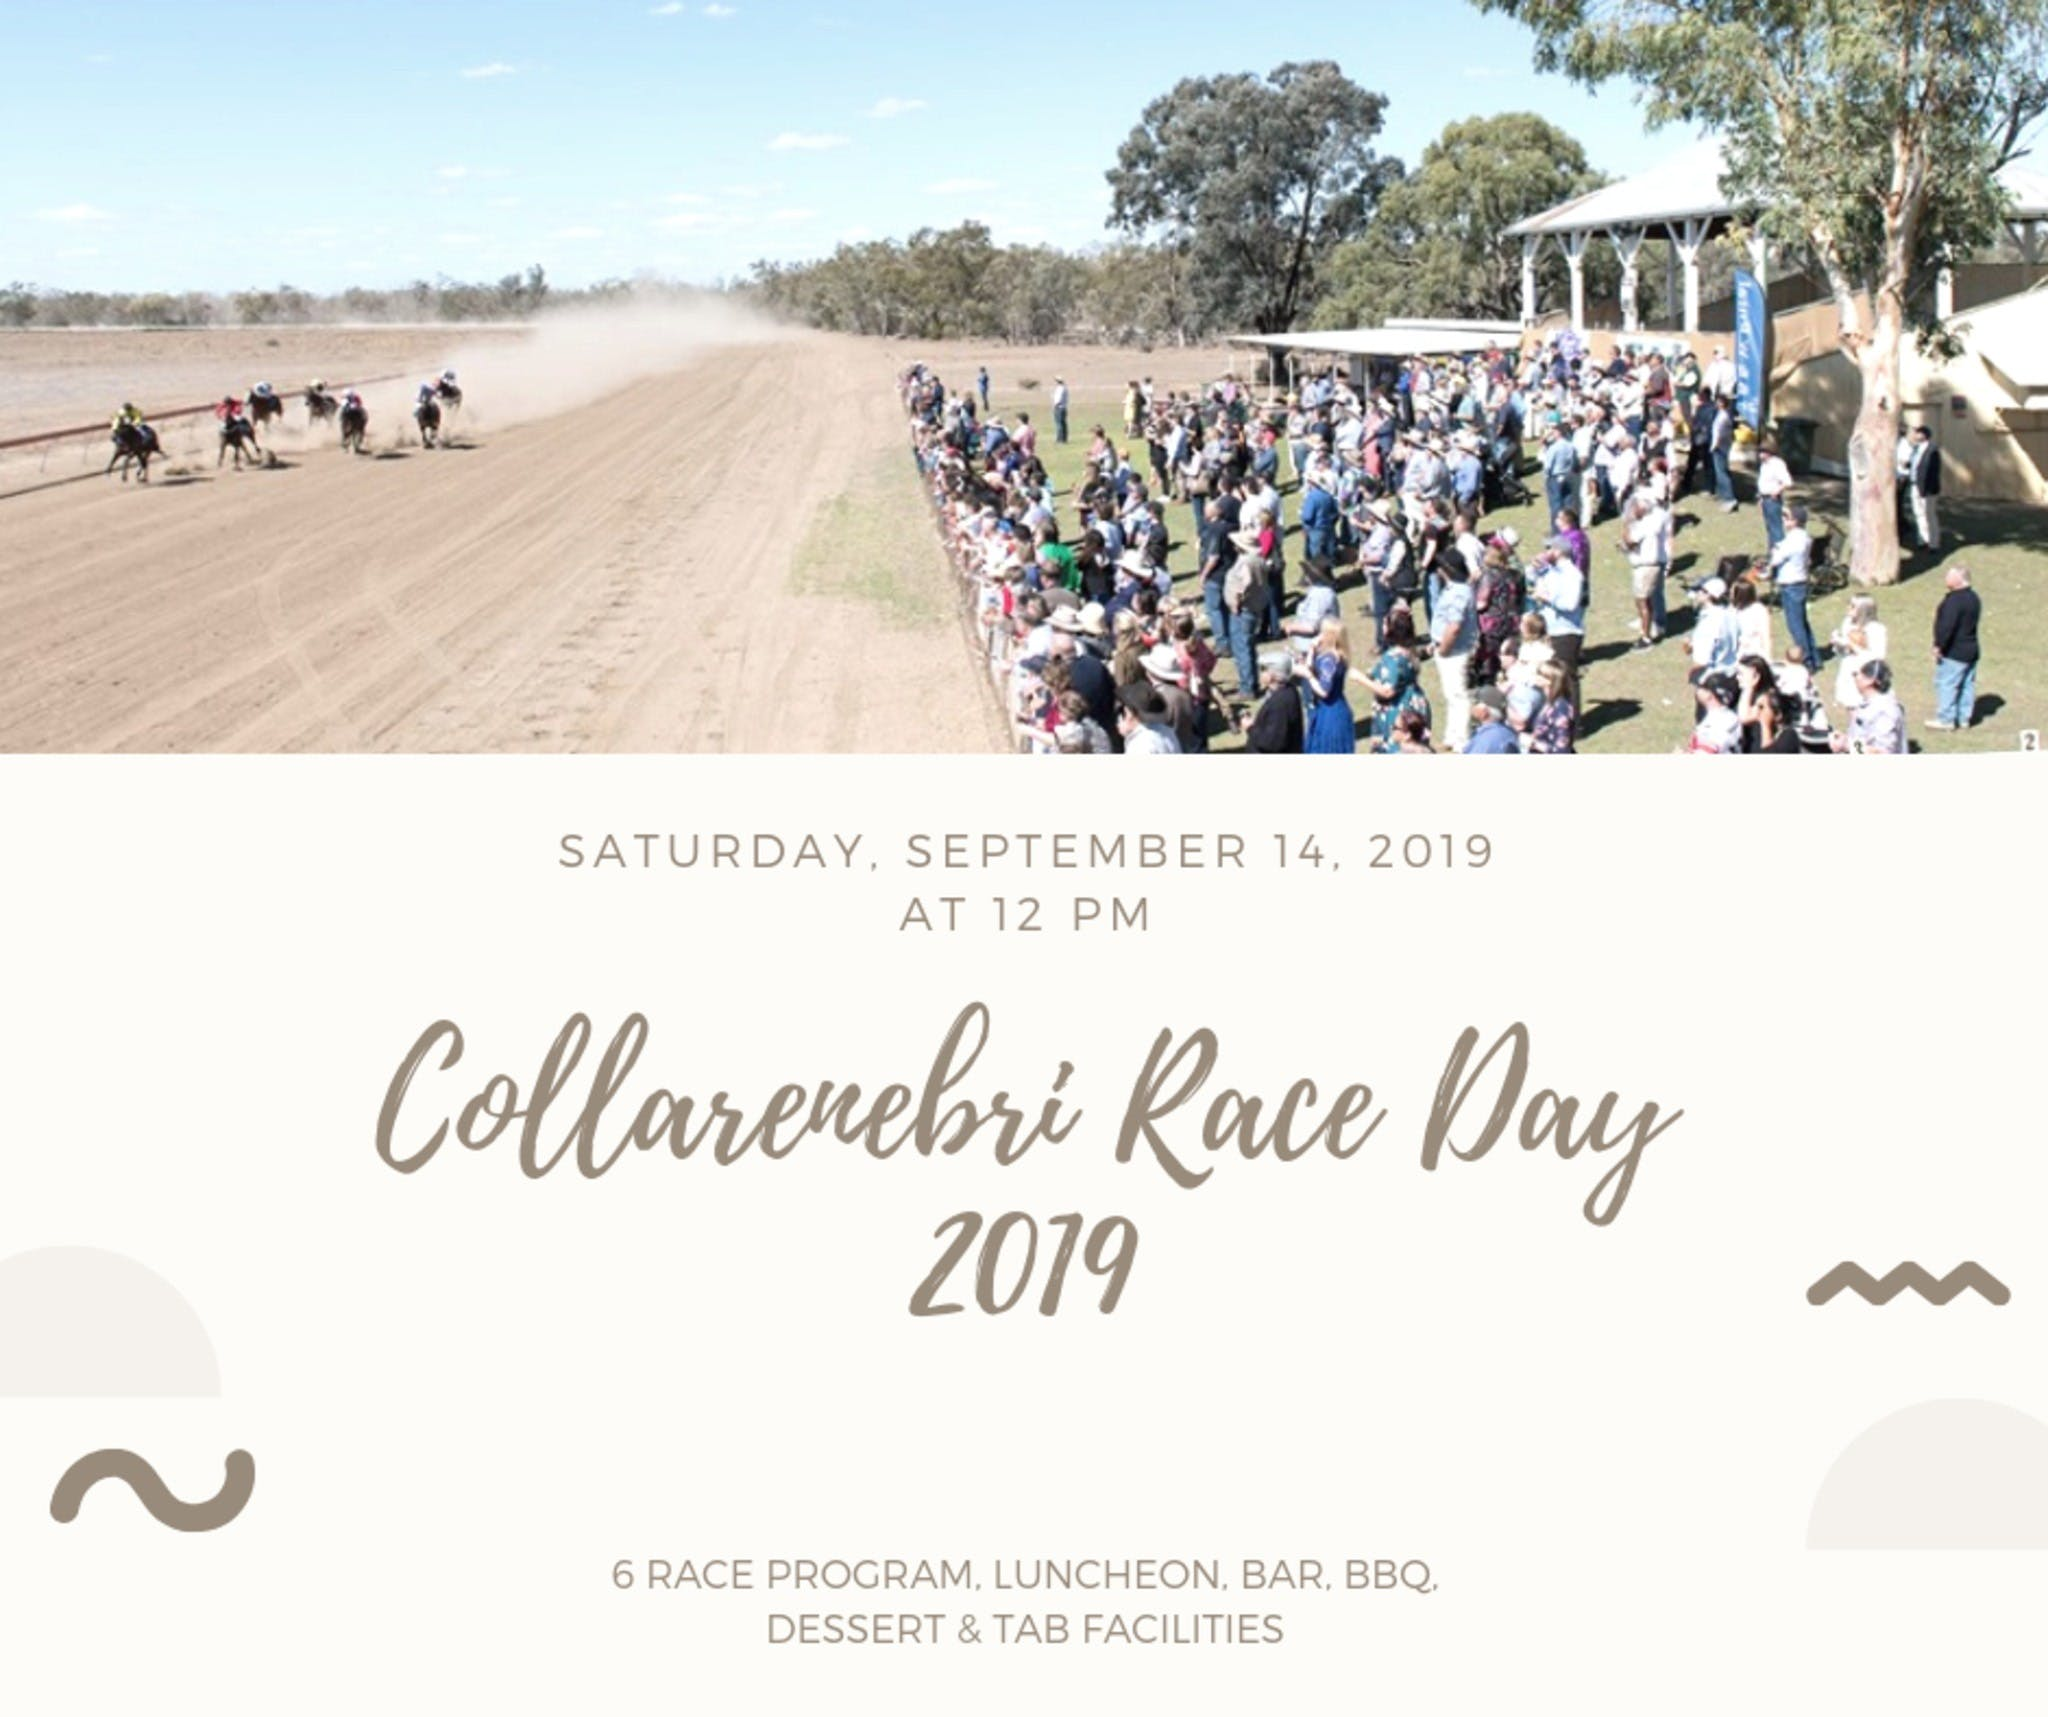 Collarenebri Races - Pubs Perth